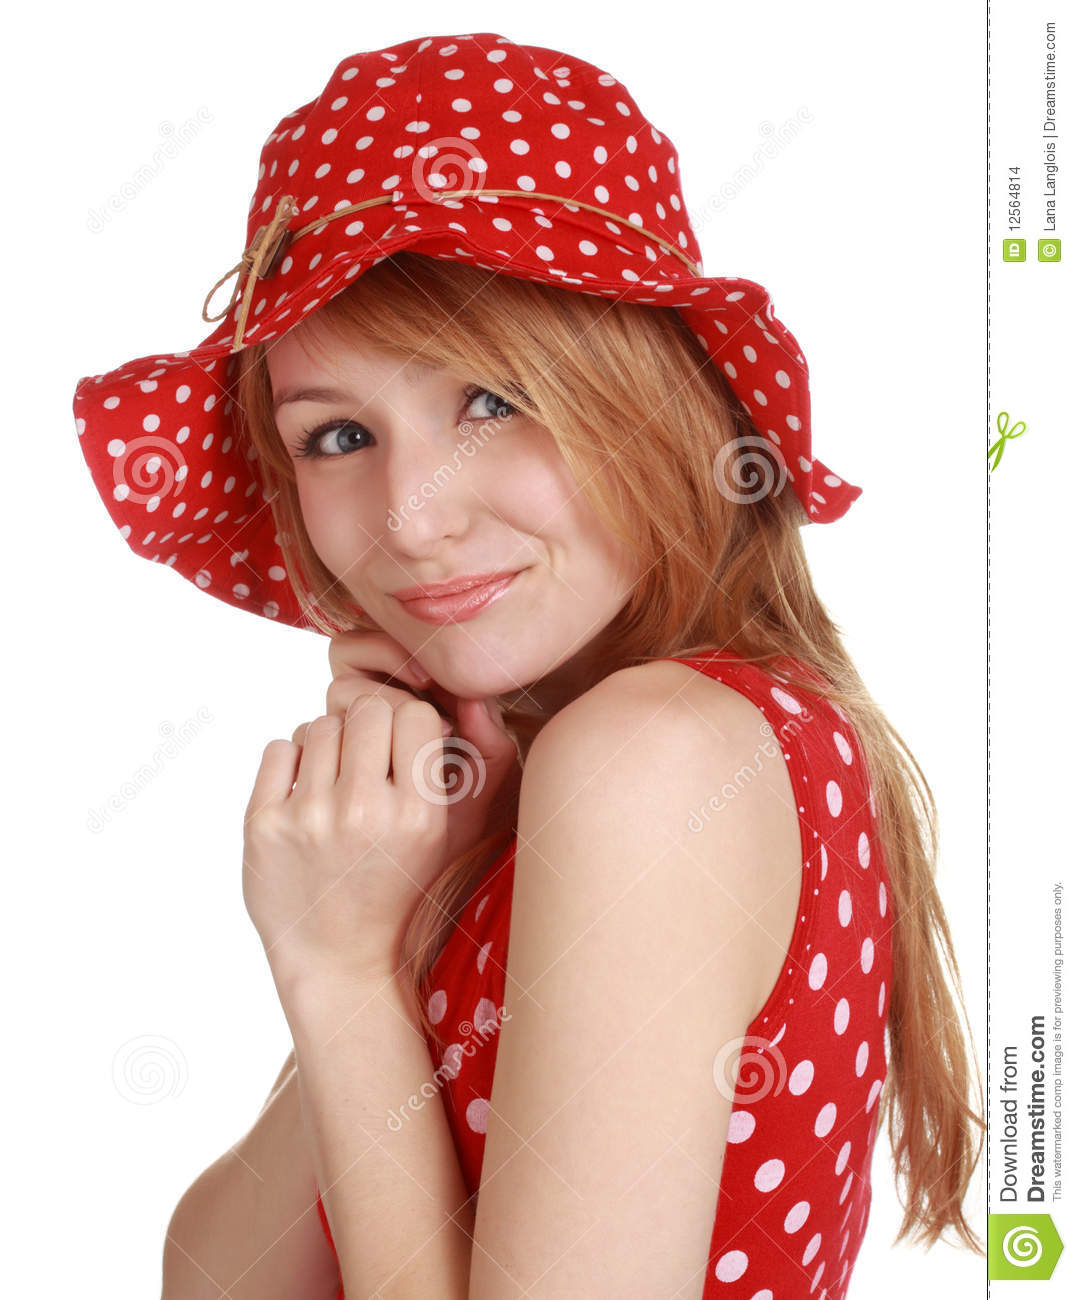 Cute Woman With Hat: Cute Girl With Red Dress And Hat Stock Images